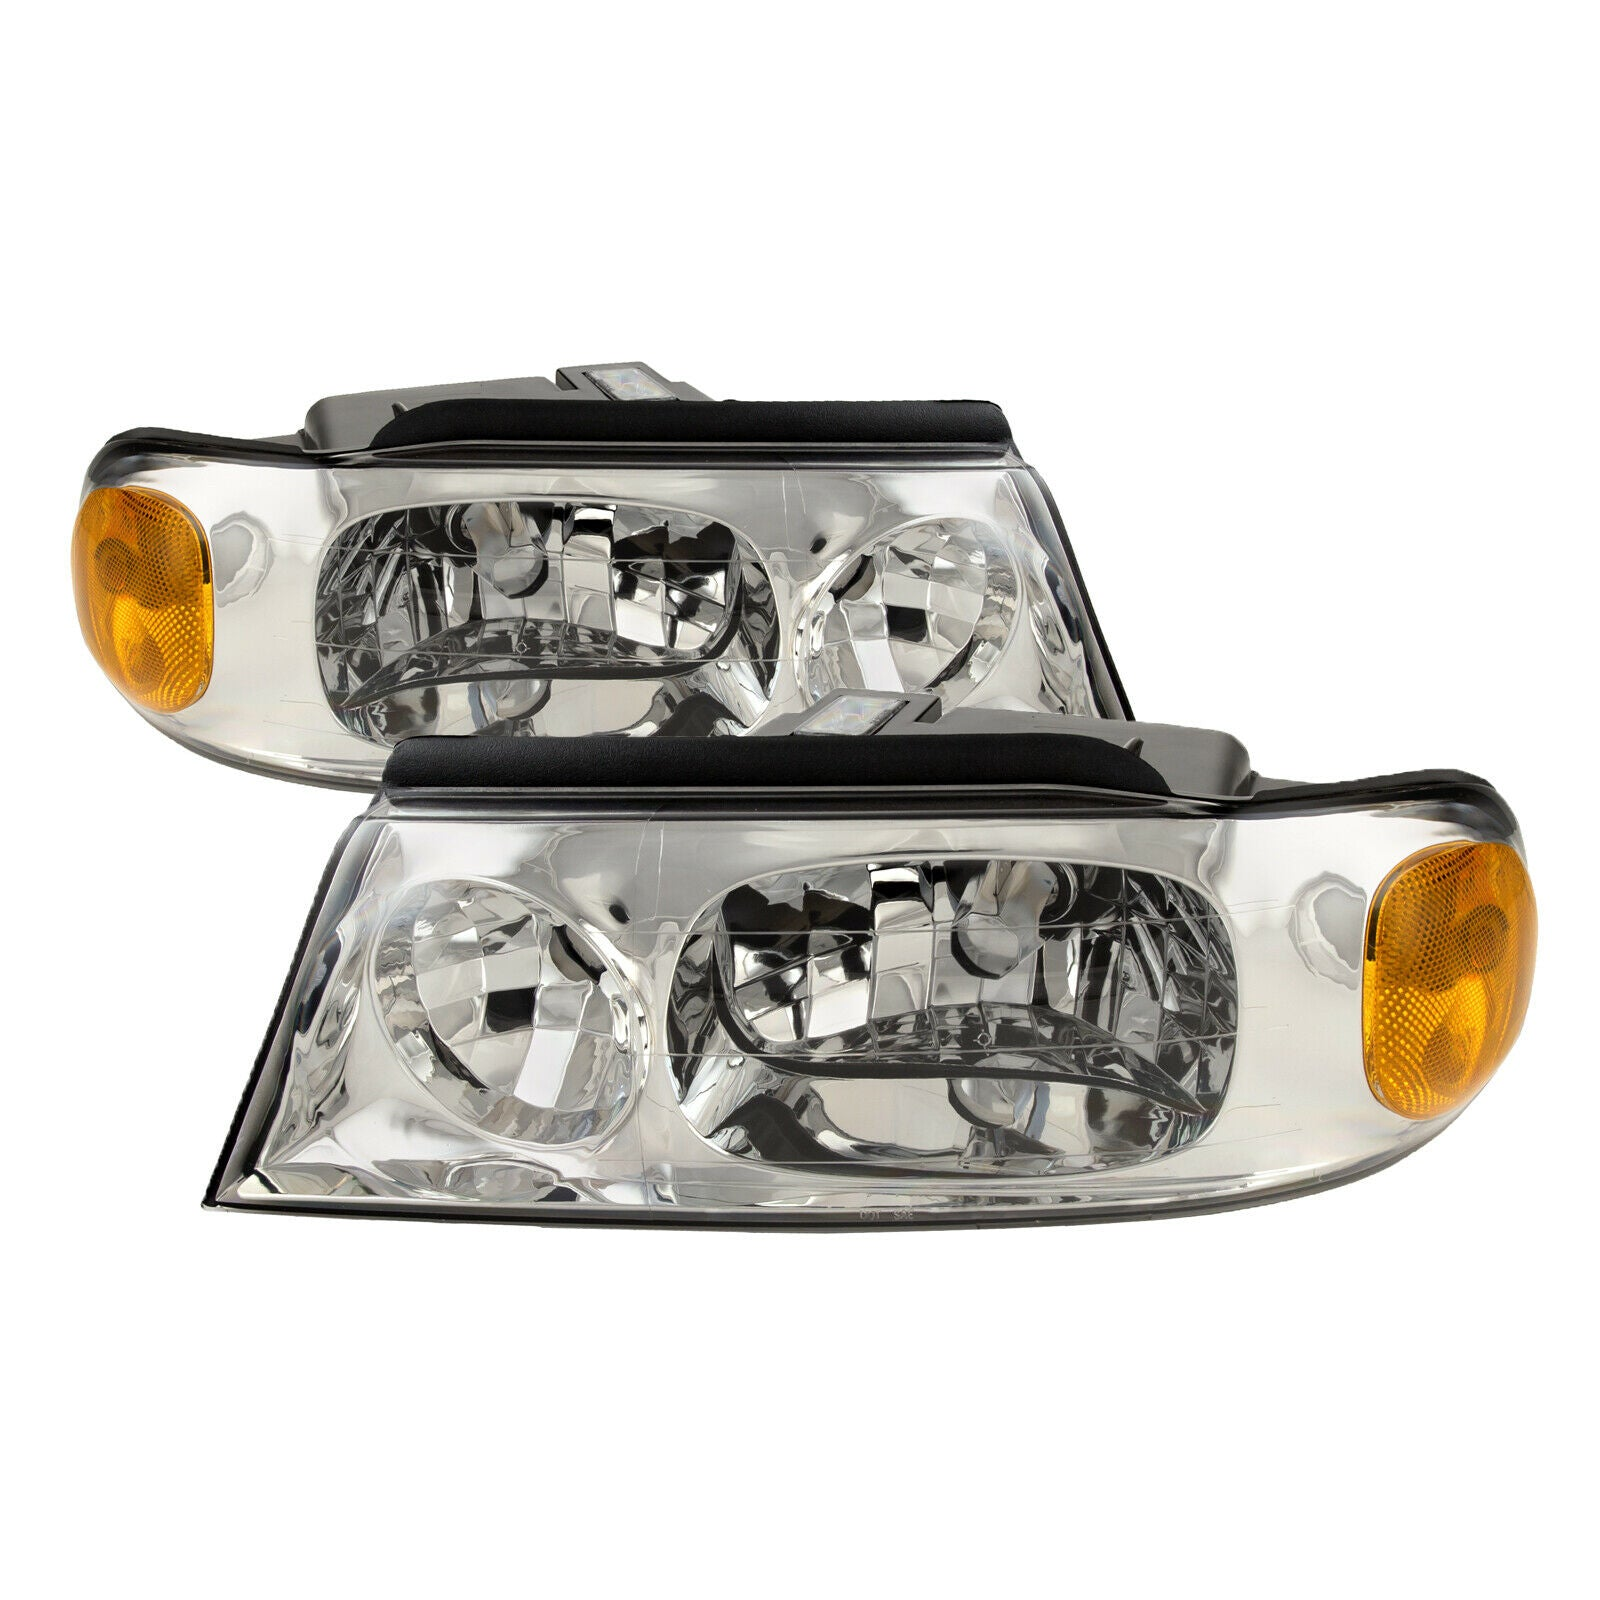 Fits Rexhall American Clipper 2005 Motorhome RV Left and Right Headlights Pair